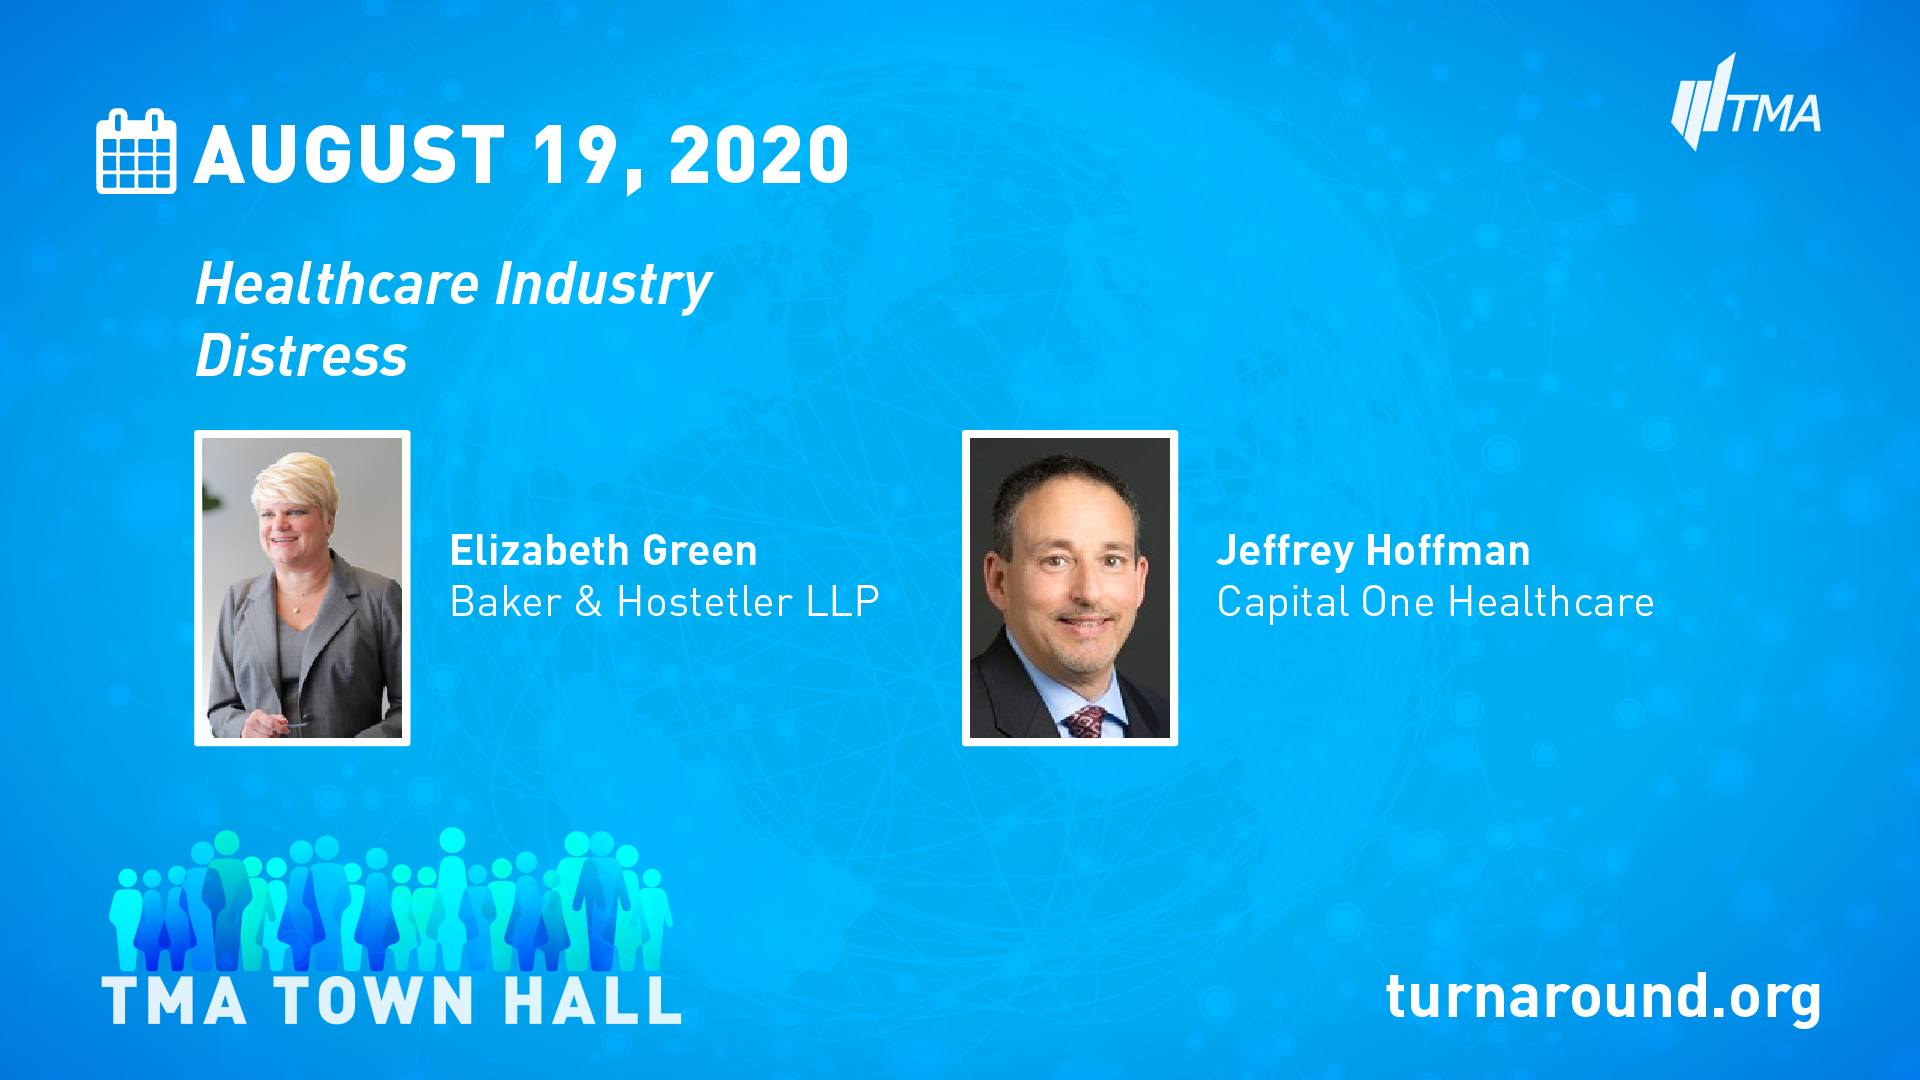 TMA Town Hall for August 19, 2020